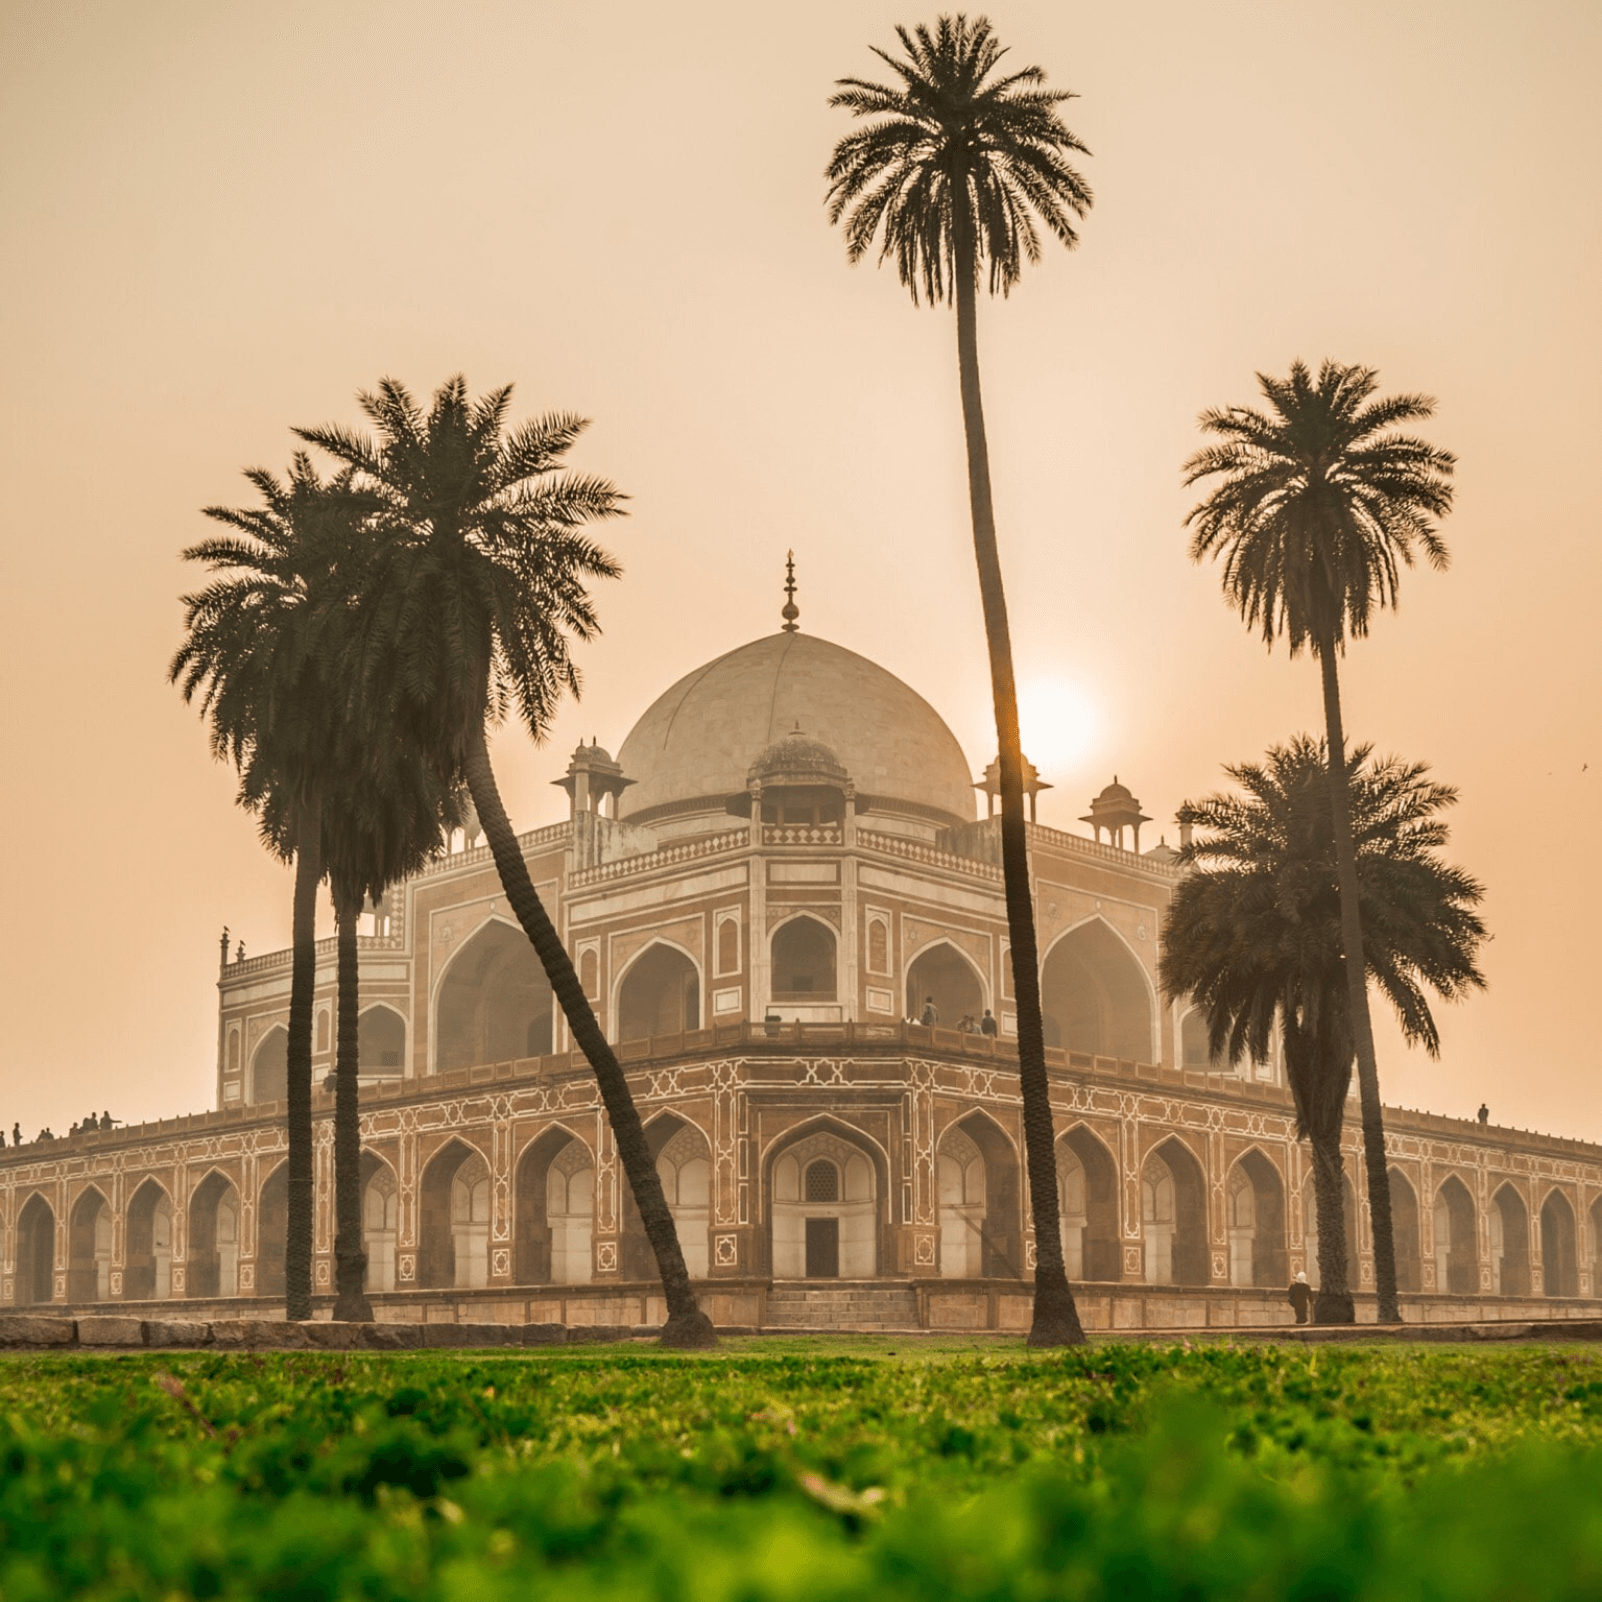 Delhi building at sunset